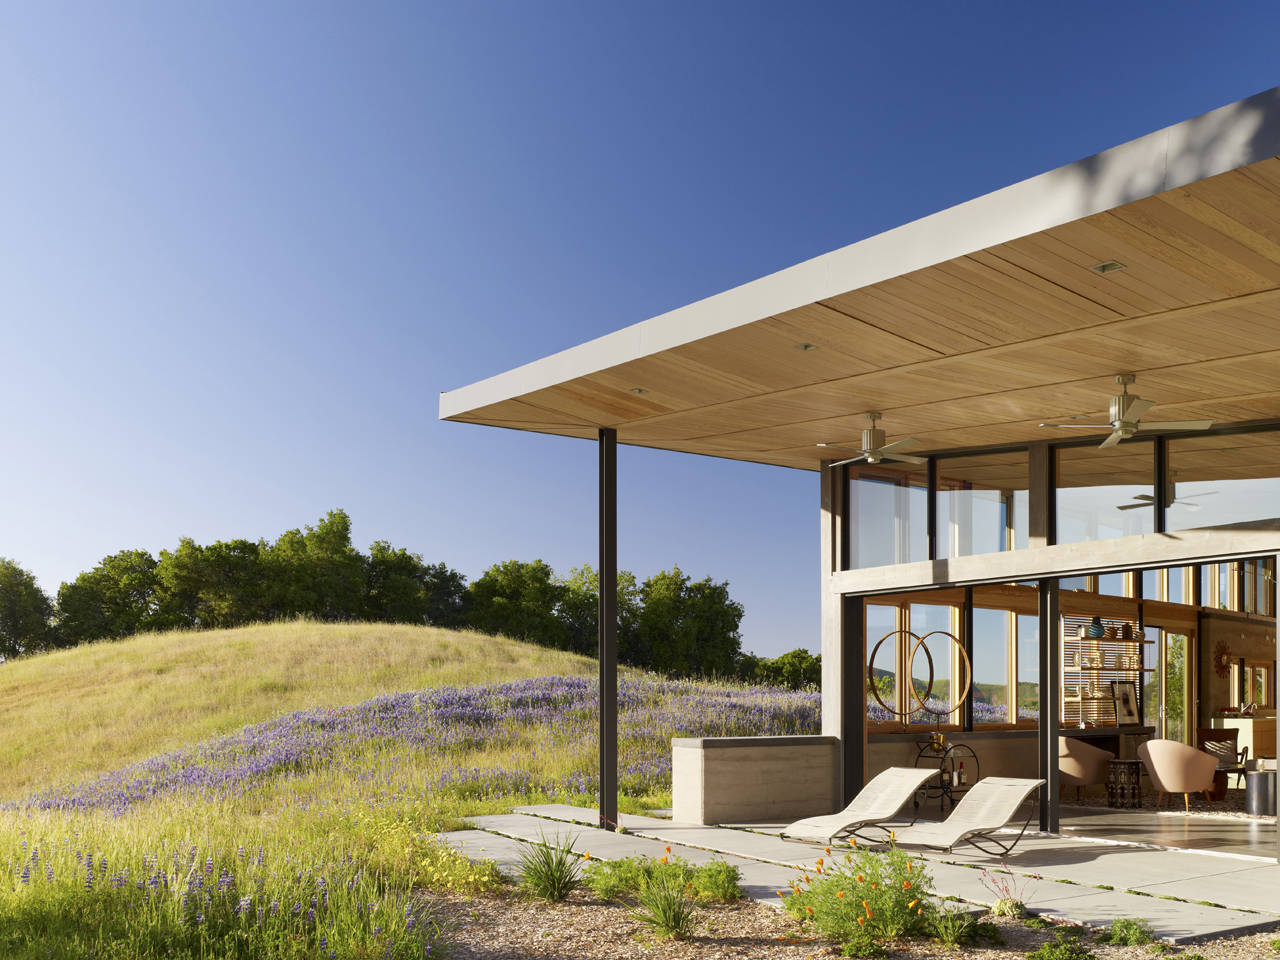 Terrace Views, Caterpillar House in Carmel, California by Feldman Architecture